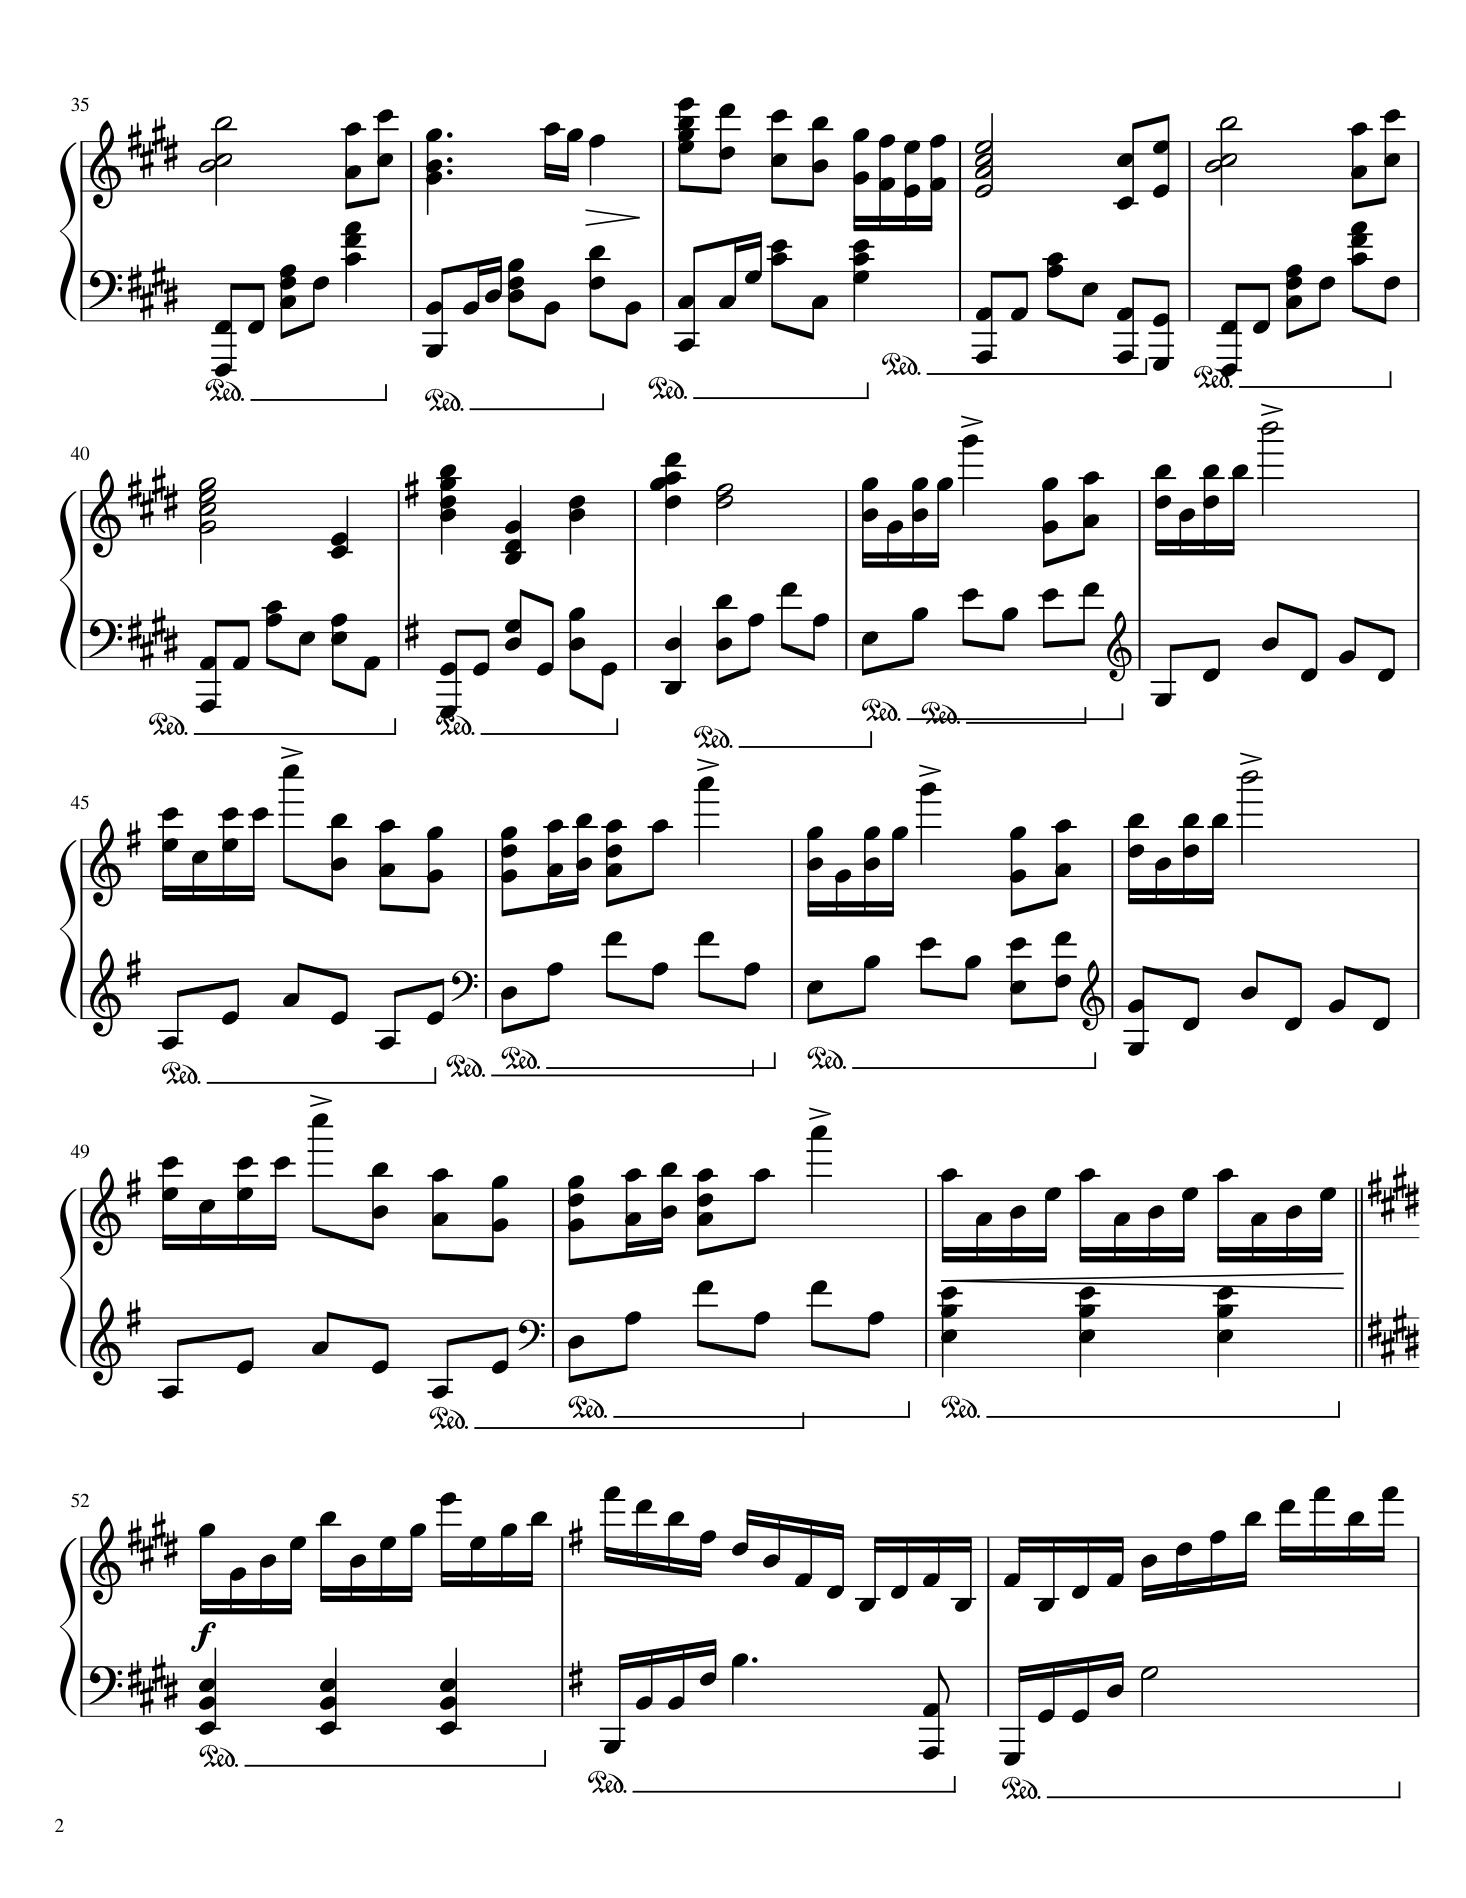 Continued story from code geass piano cover by tehishter part 2 continued story from code geass piano cover by tehishter part 2 hexwebz Choice Image